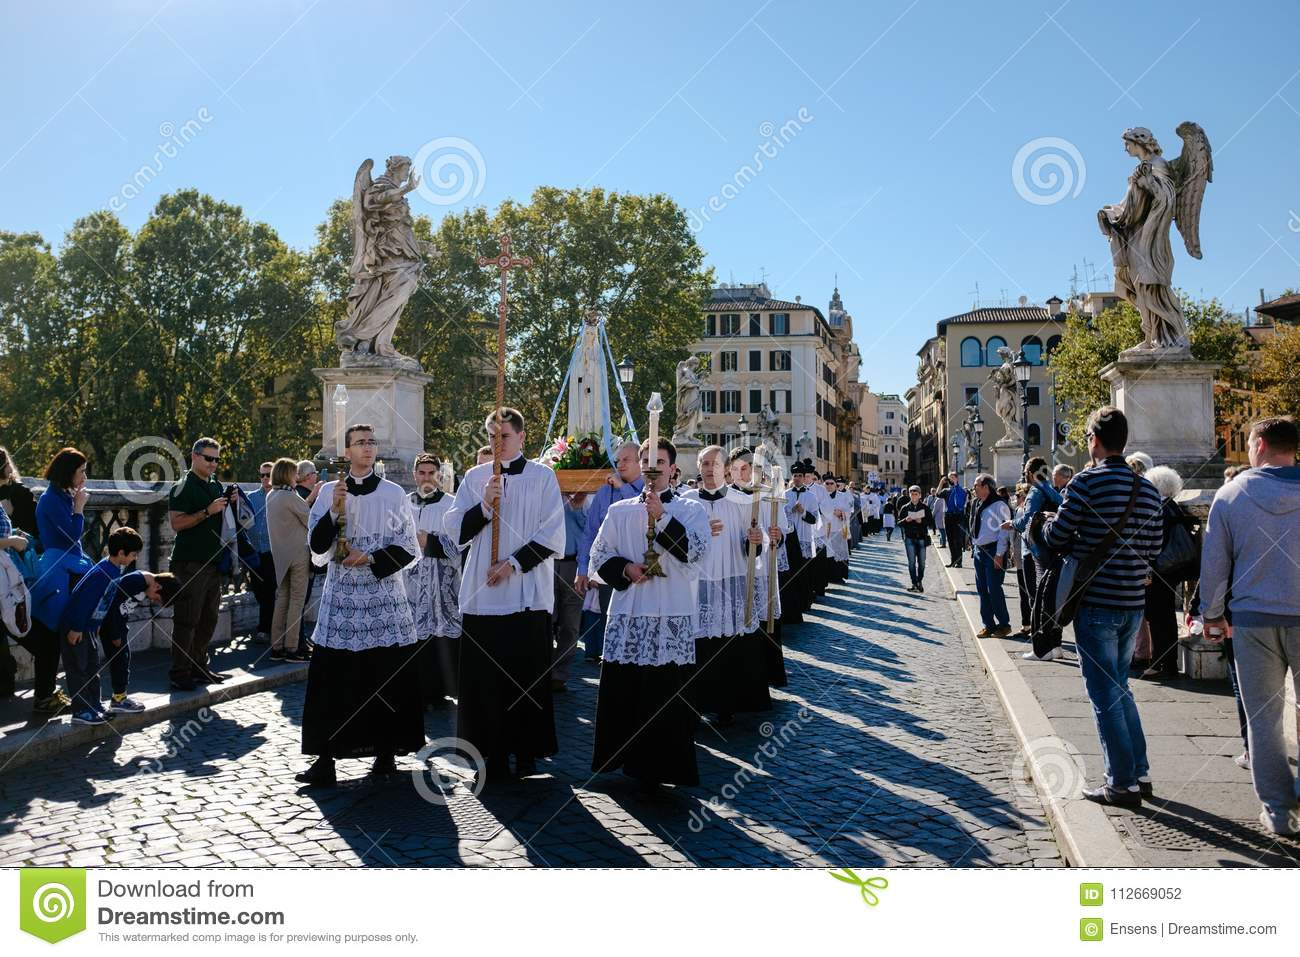 ROME-ITALY-24 10 2015, religious procession through the streets